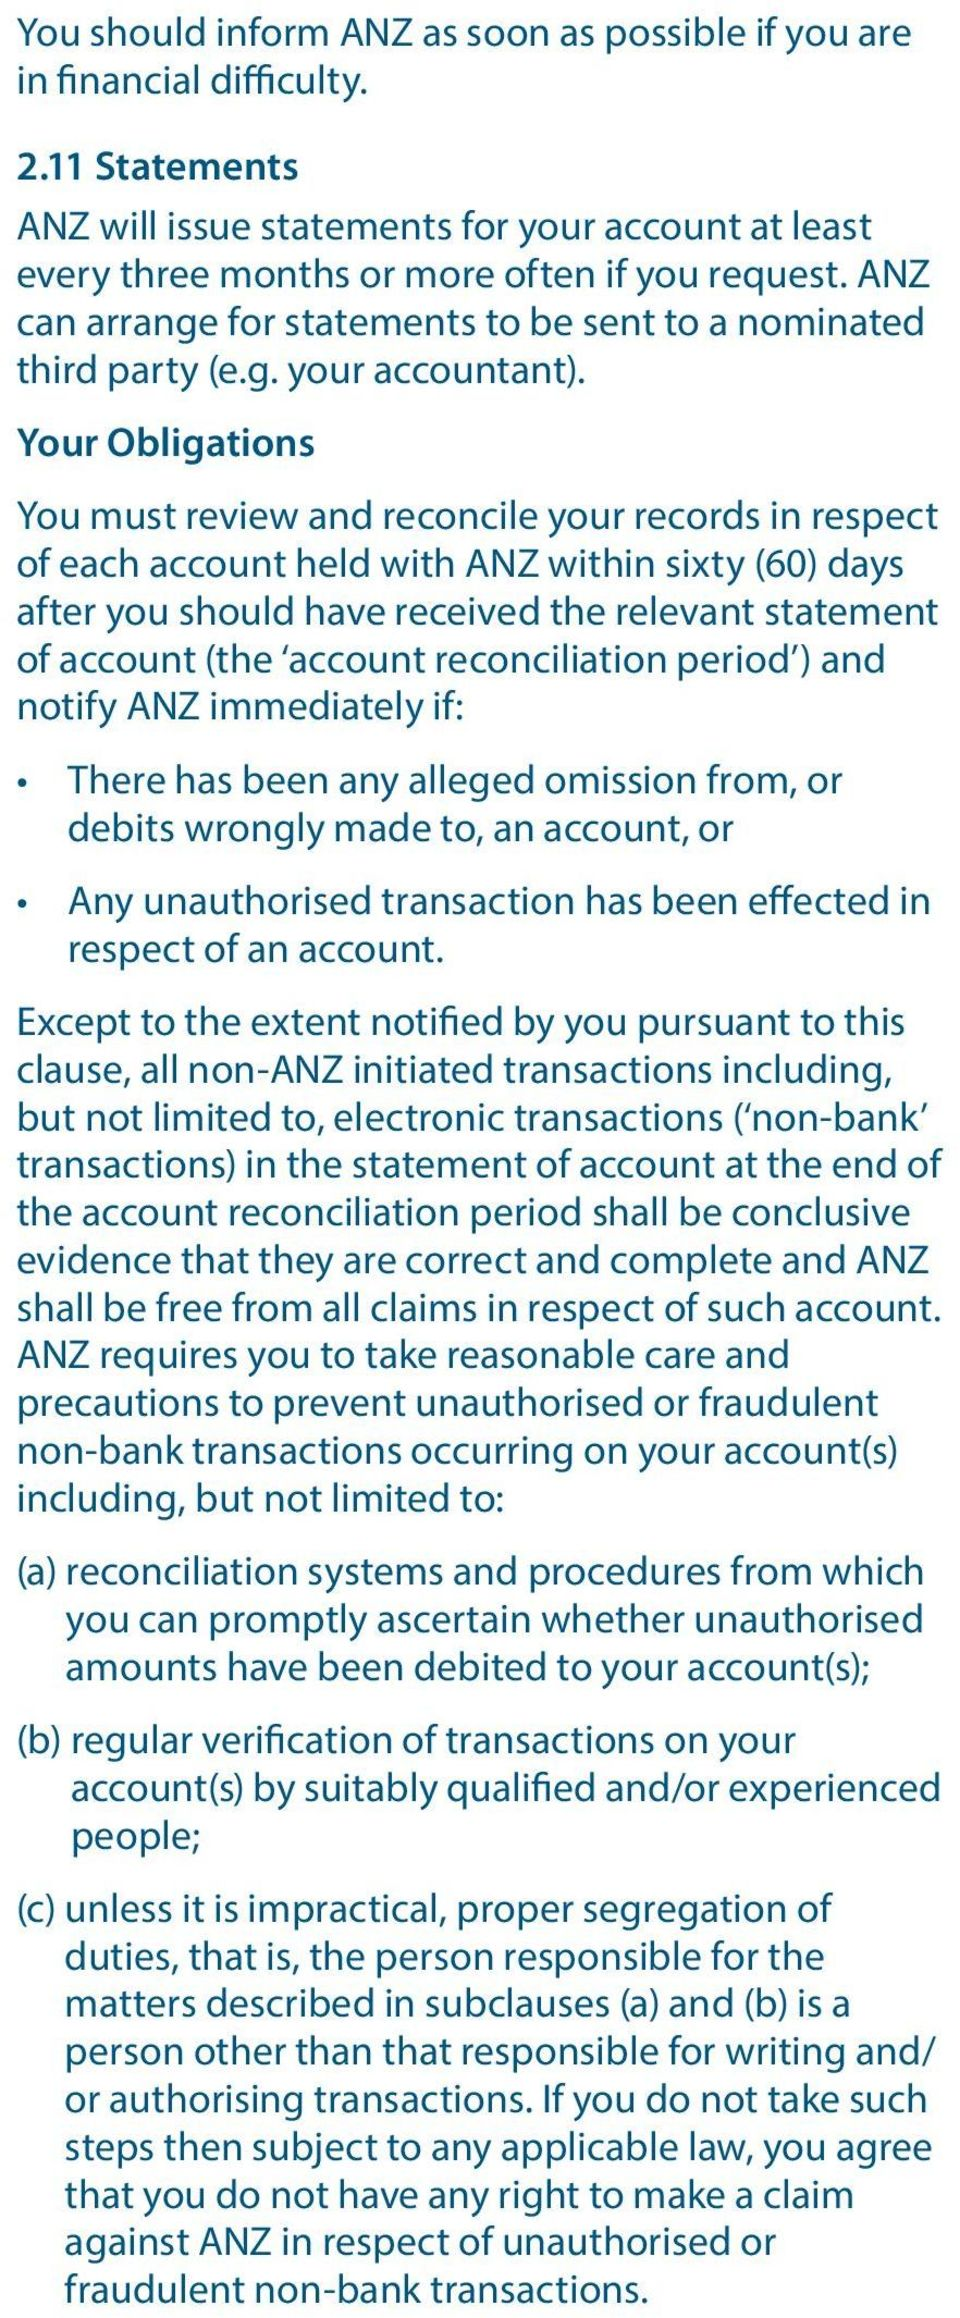 Your Obligations You must review and reconcile your records in respect of each account held with ANZ within sixty (60) days after you should have received the relevant statement of account (the